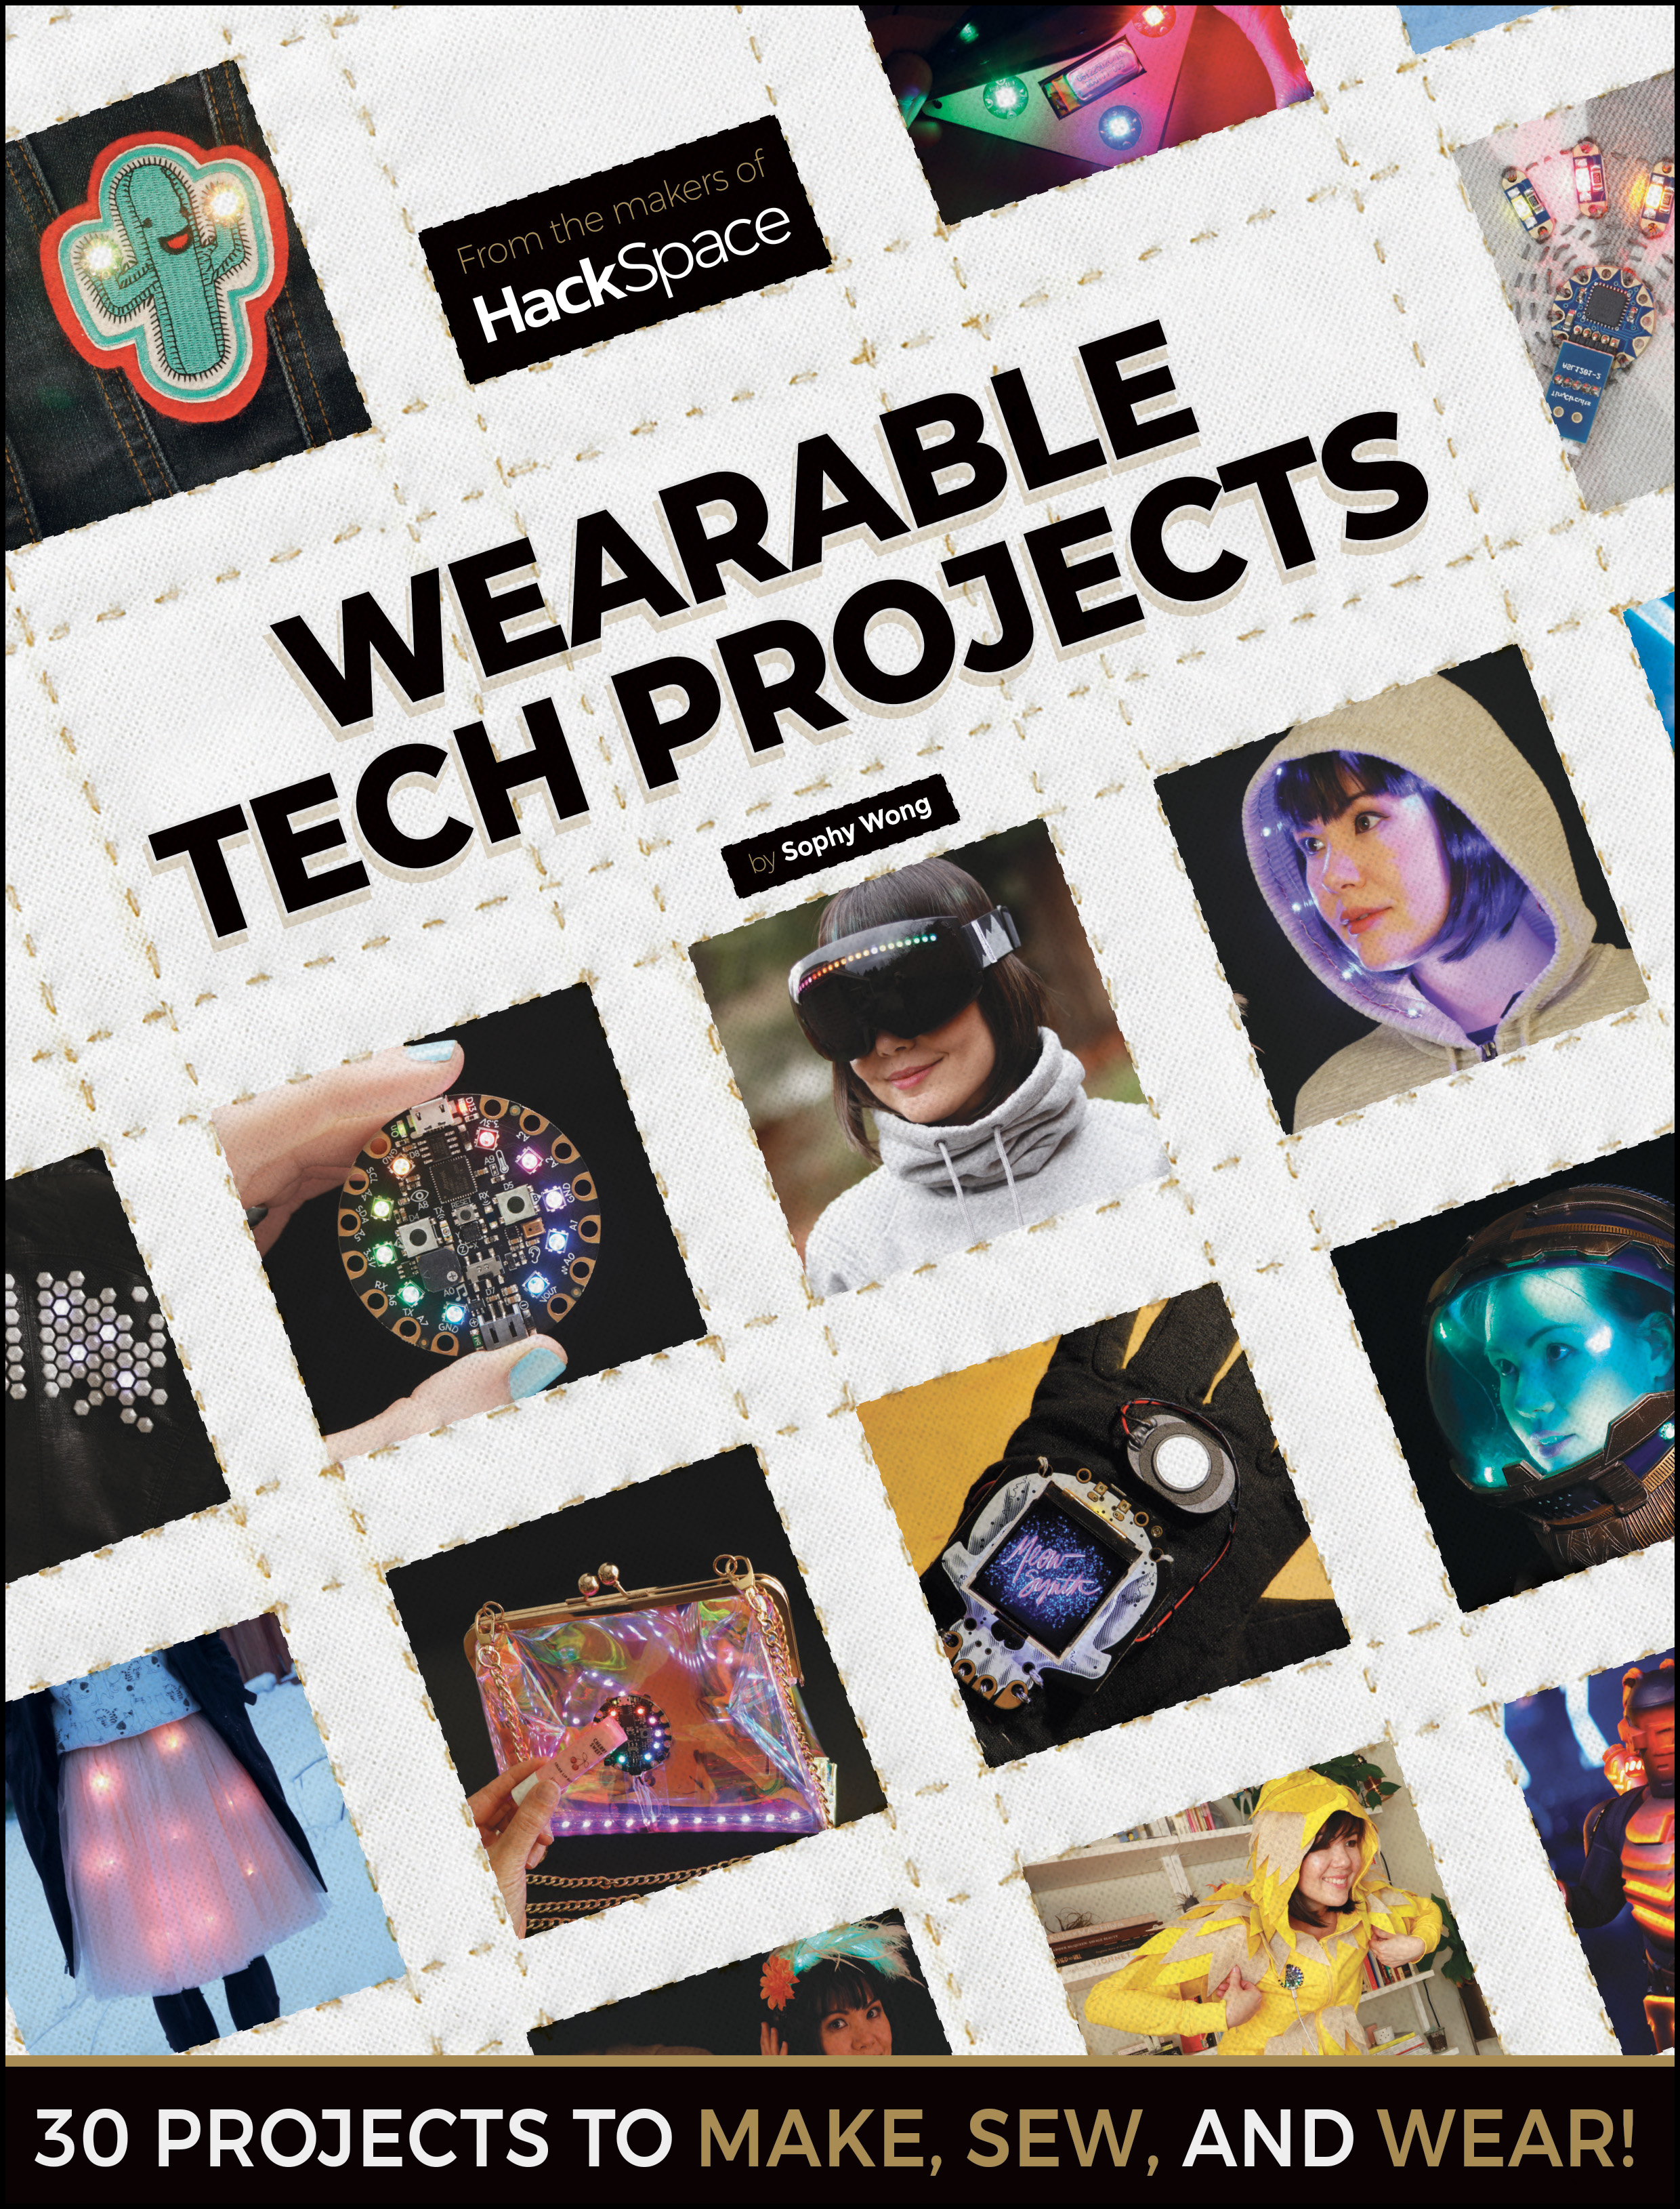 Create wearable tech with Sophy Wong and our new book | HackSpace magazine #18